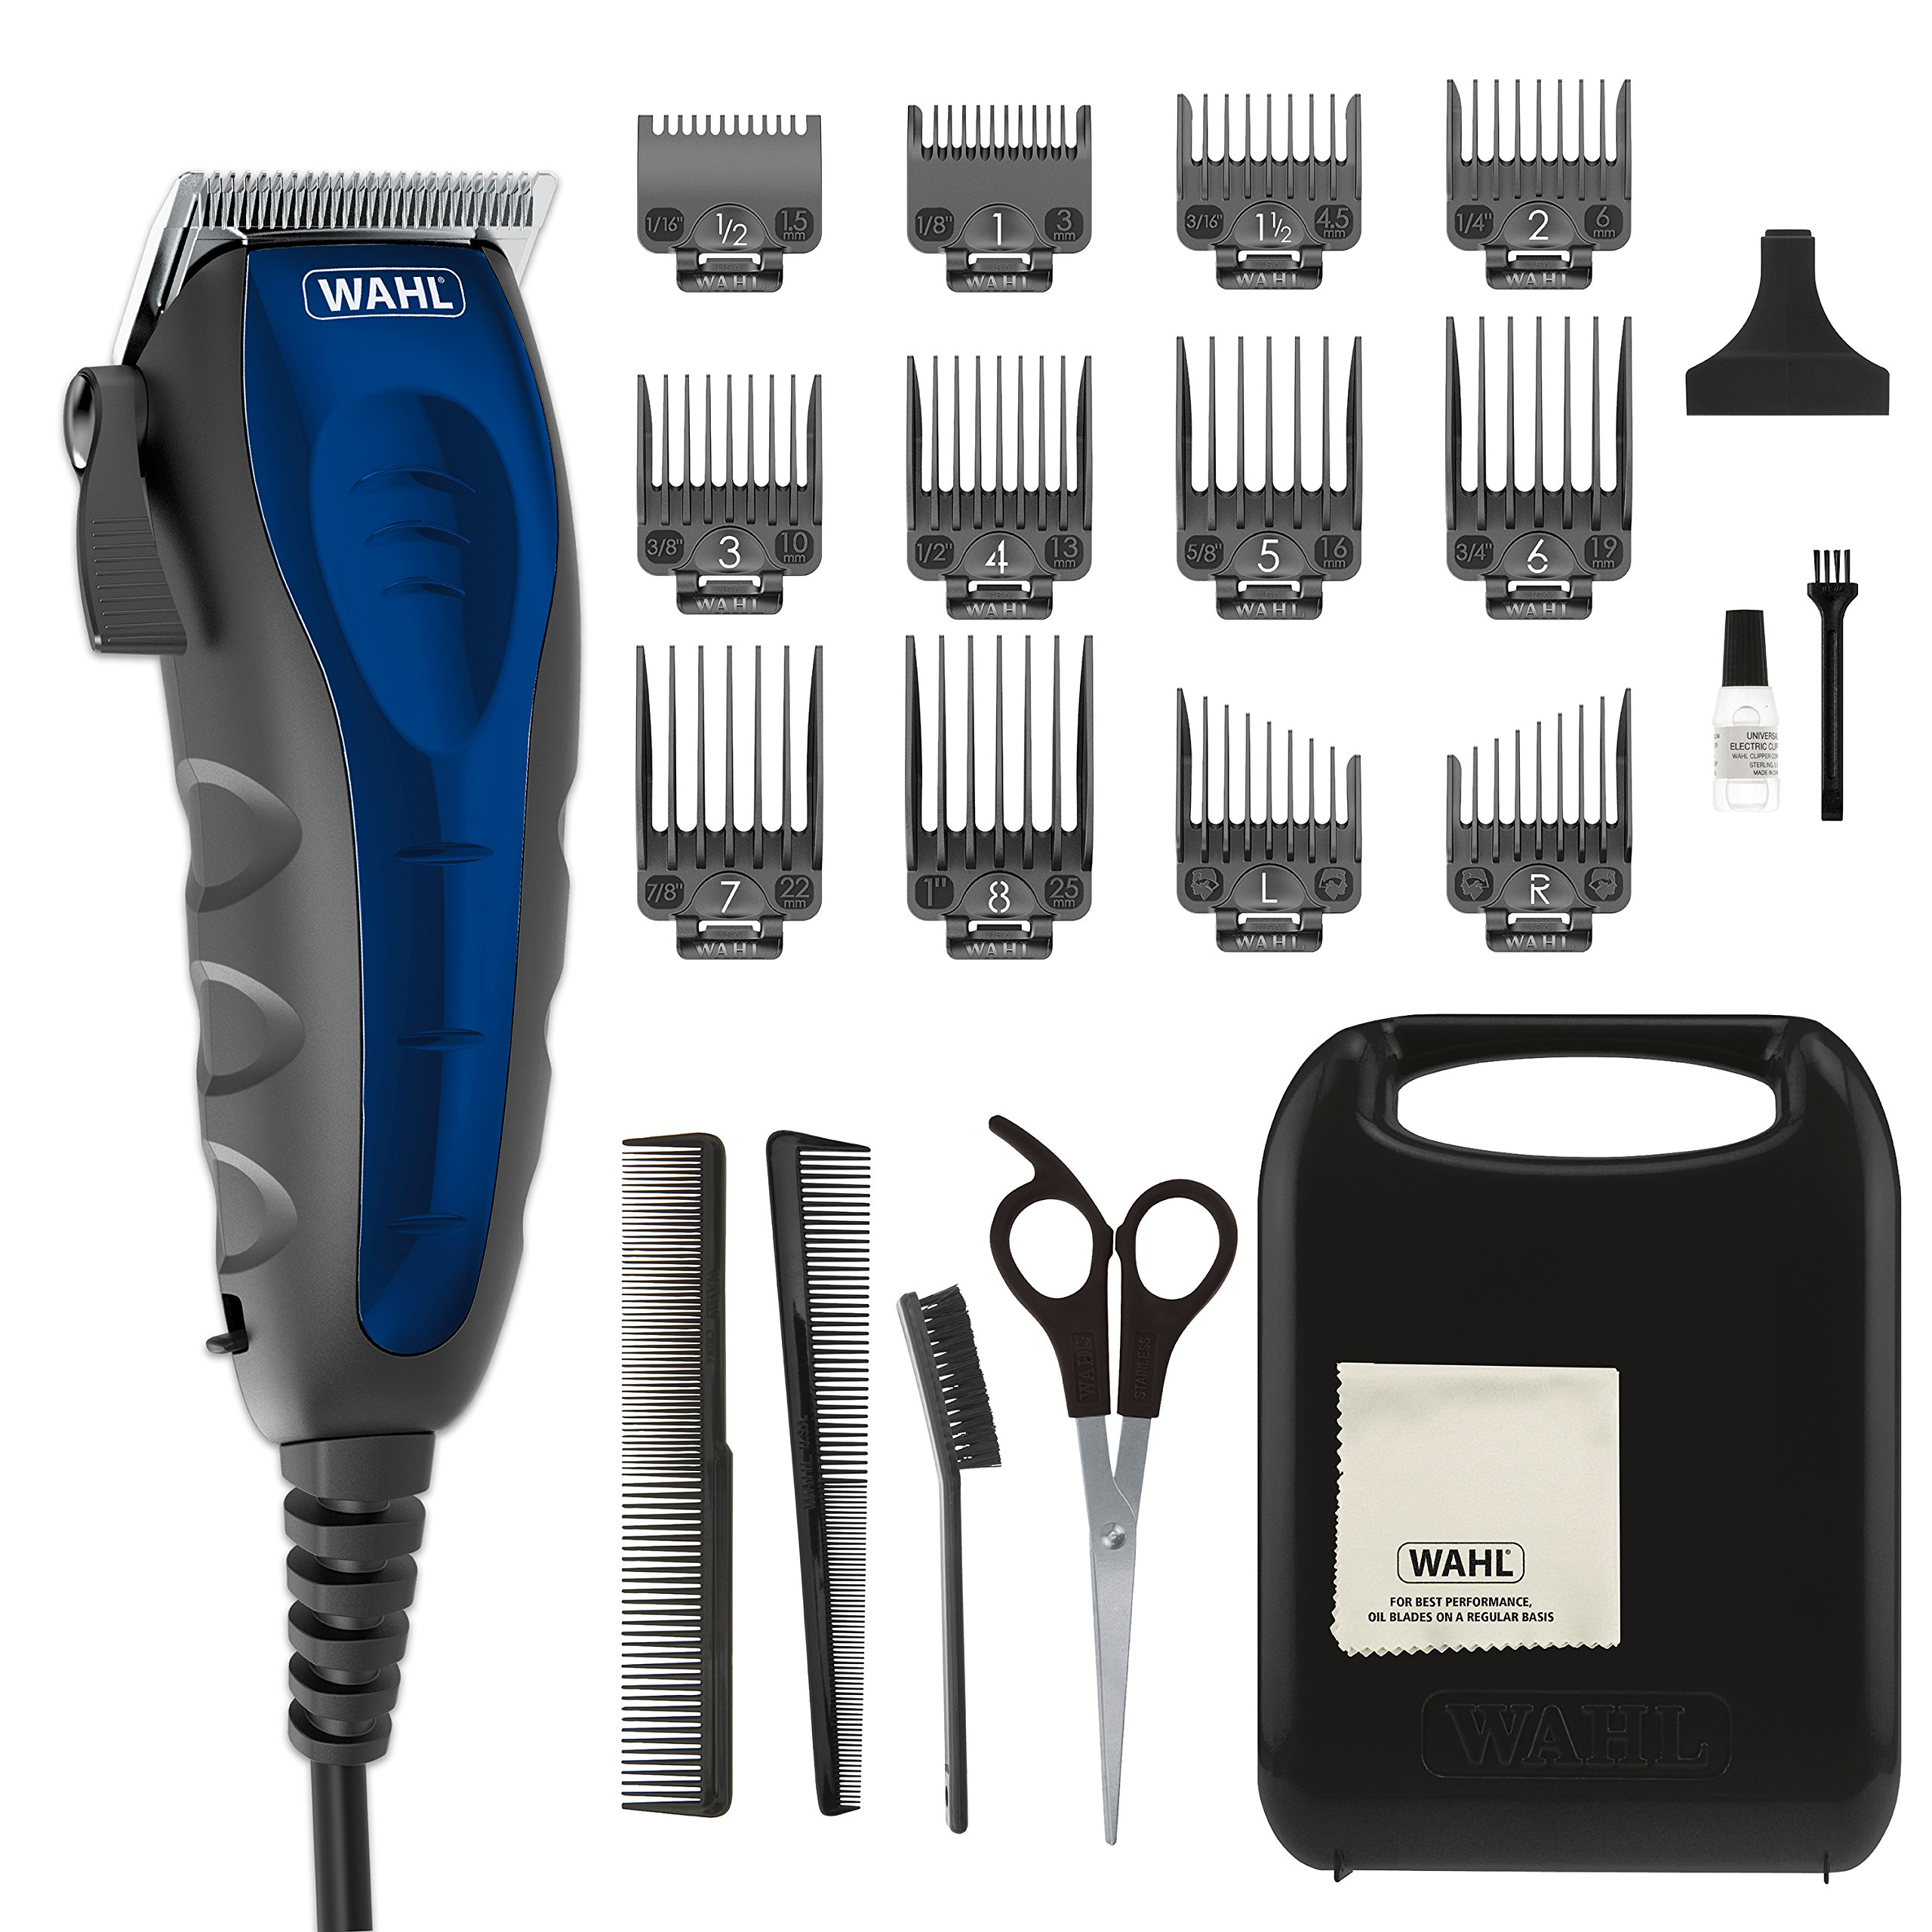 Wahl Model 10 Clipper Self-Cut Personal Haircutting Kit – Compact Size  for Clipping, Trimming & Grooming Kit